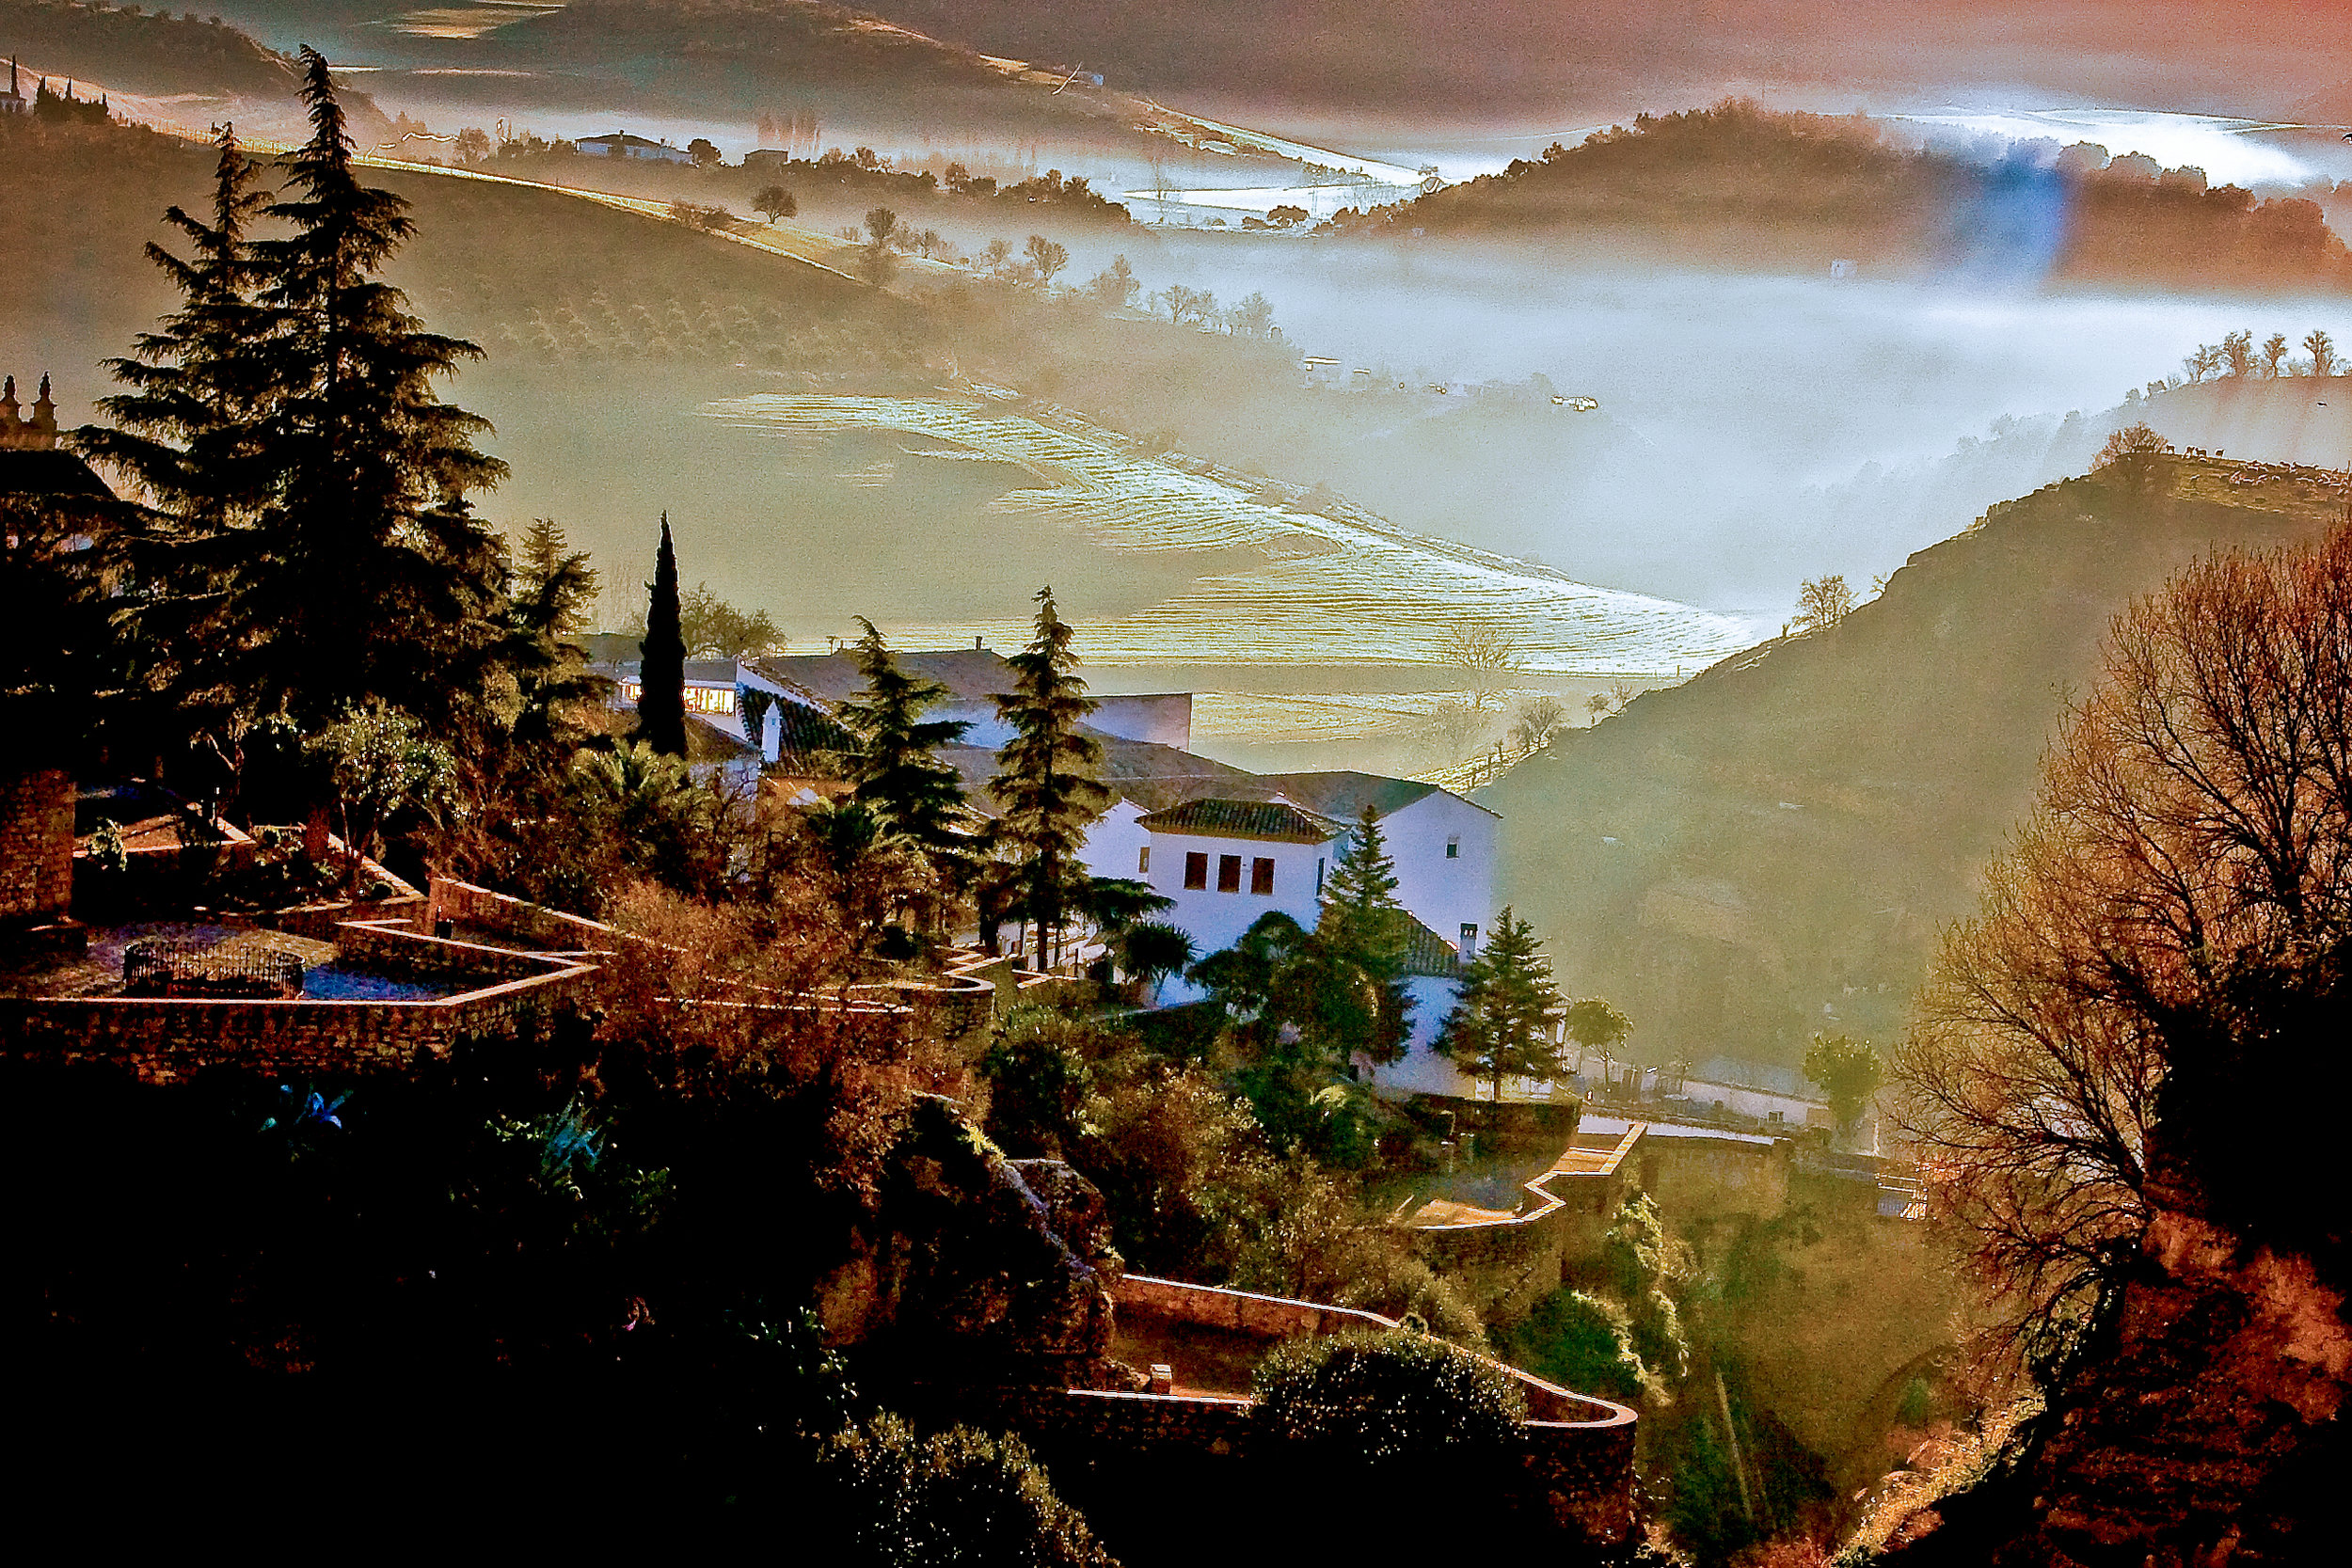 SP Ronda morning mist series -3.jpg